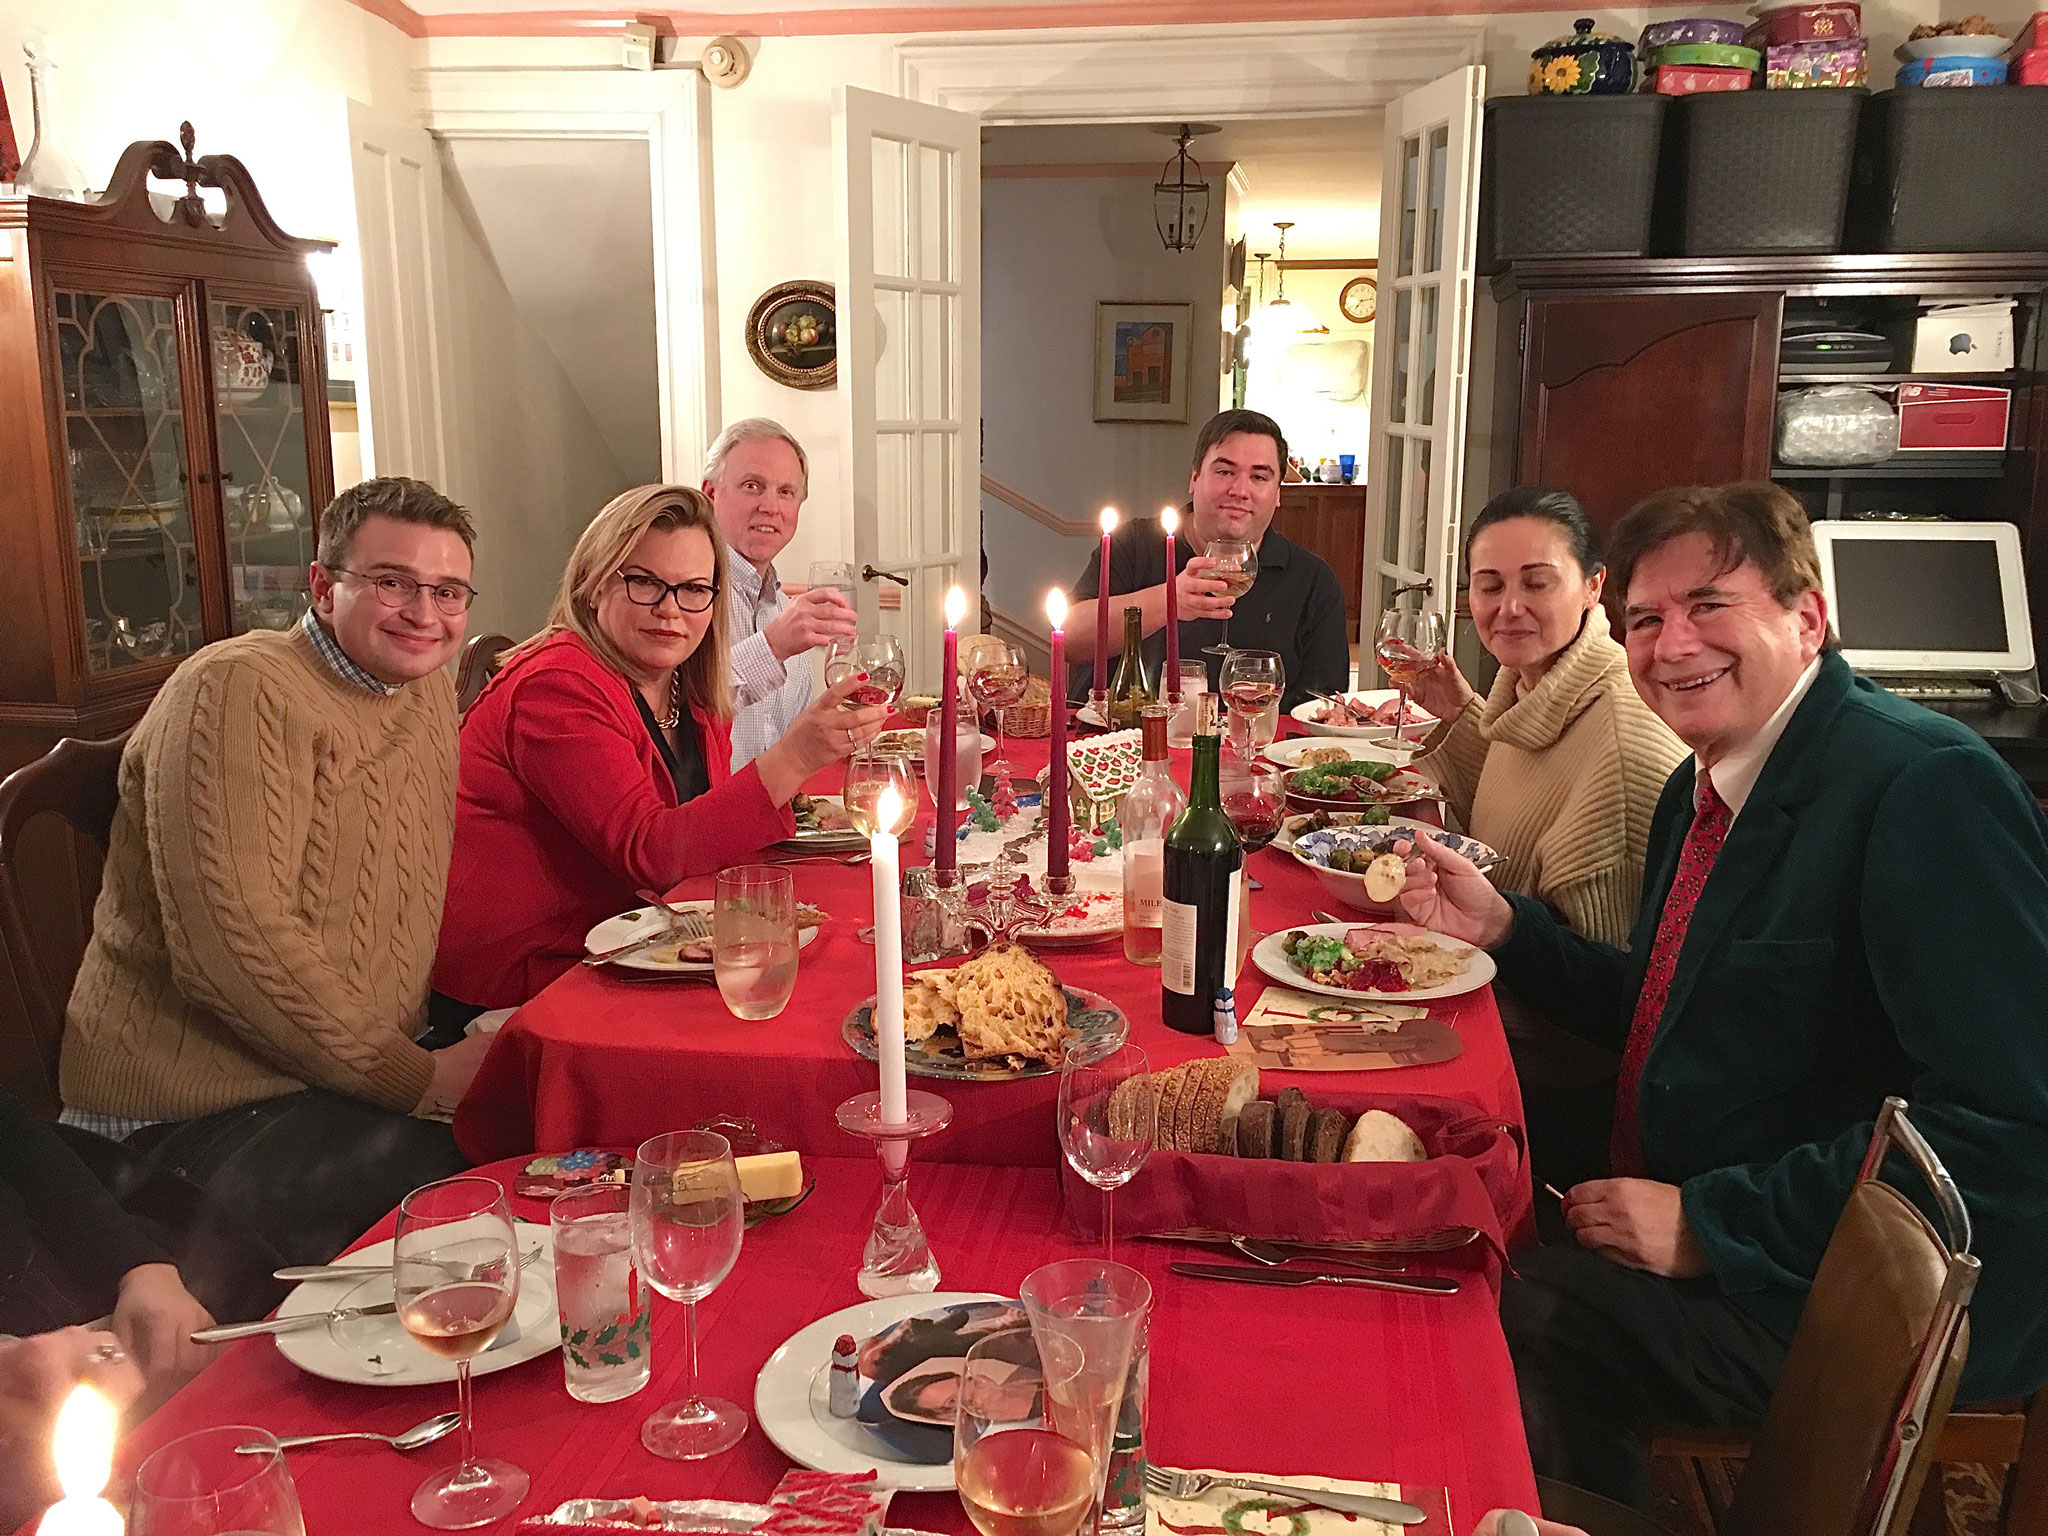 Celeste, Stuart Jr., Greg, Allie & John, Xmas dinner, E. 85th St.